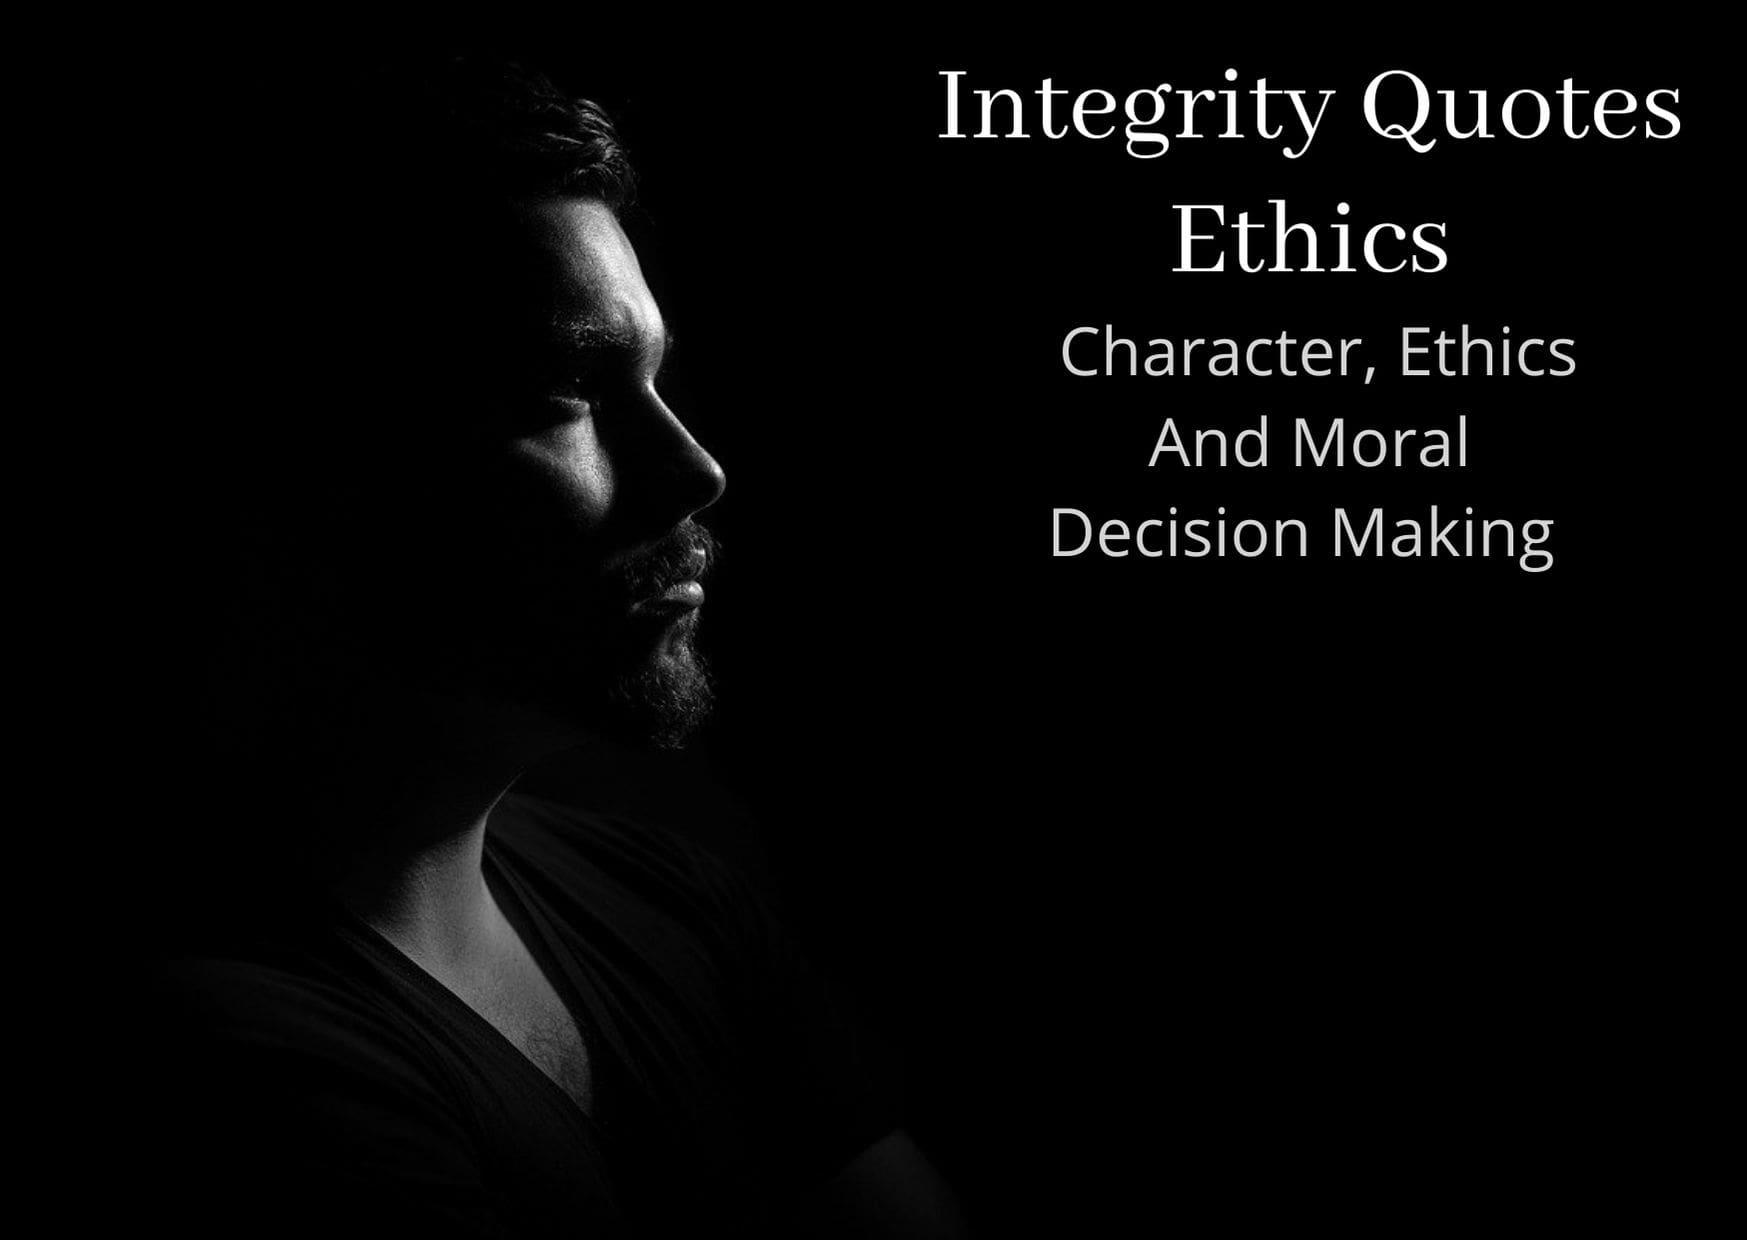 27 Character, Ethics And Moral Decision Making Quotes